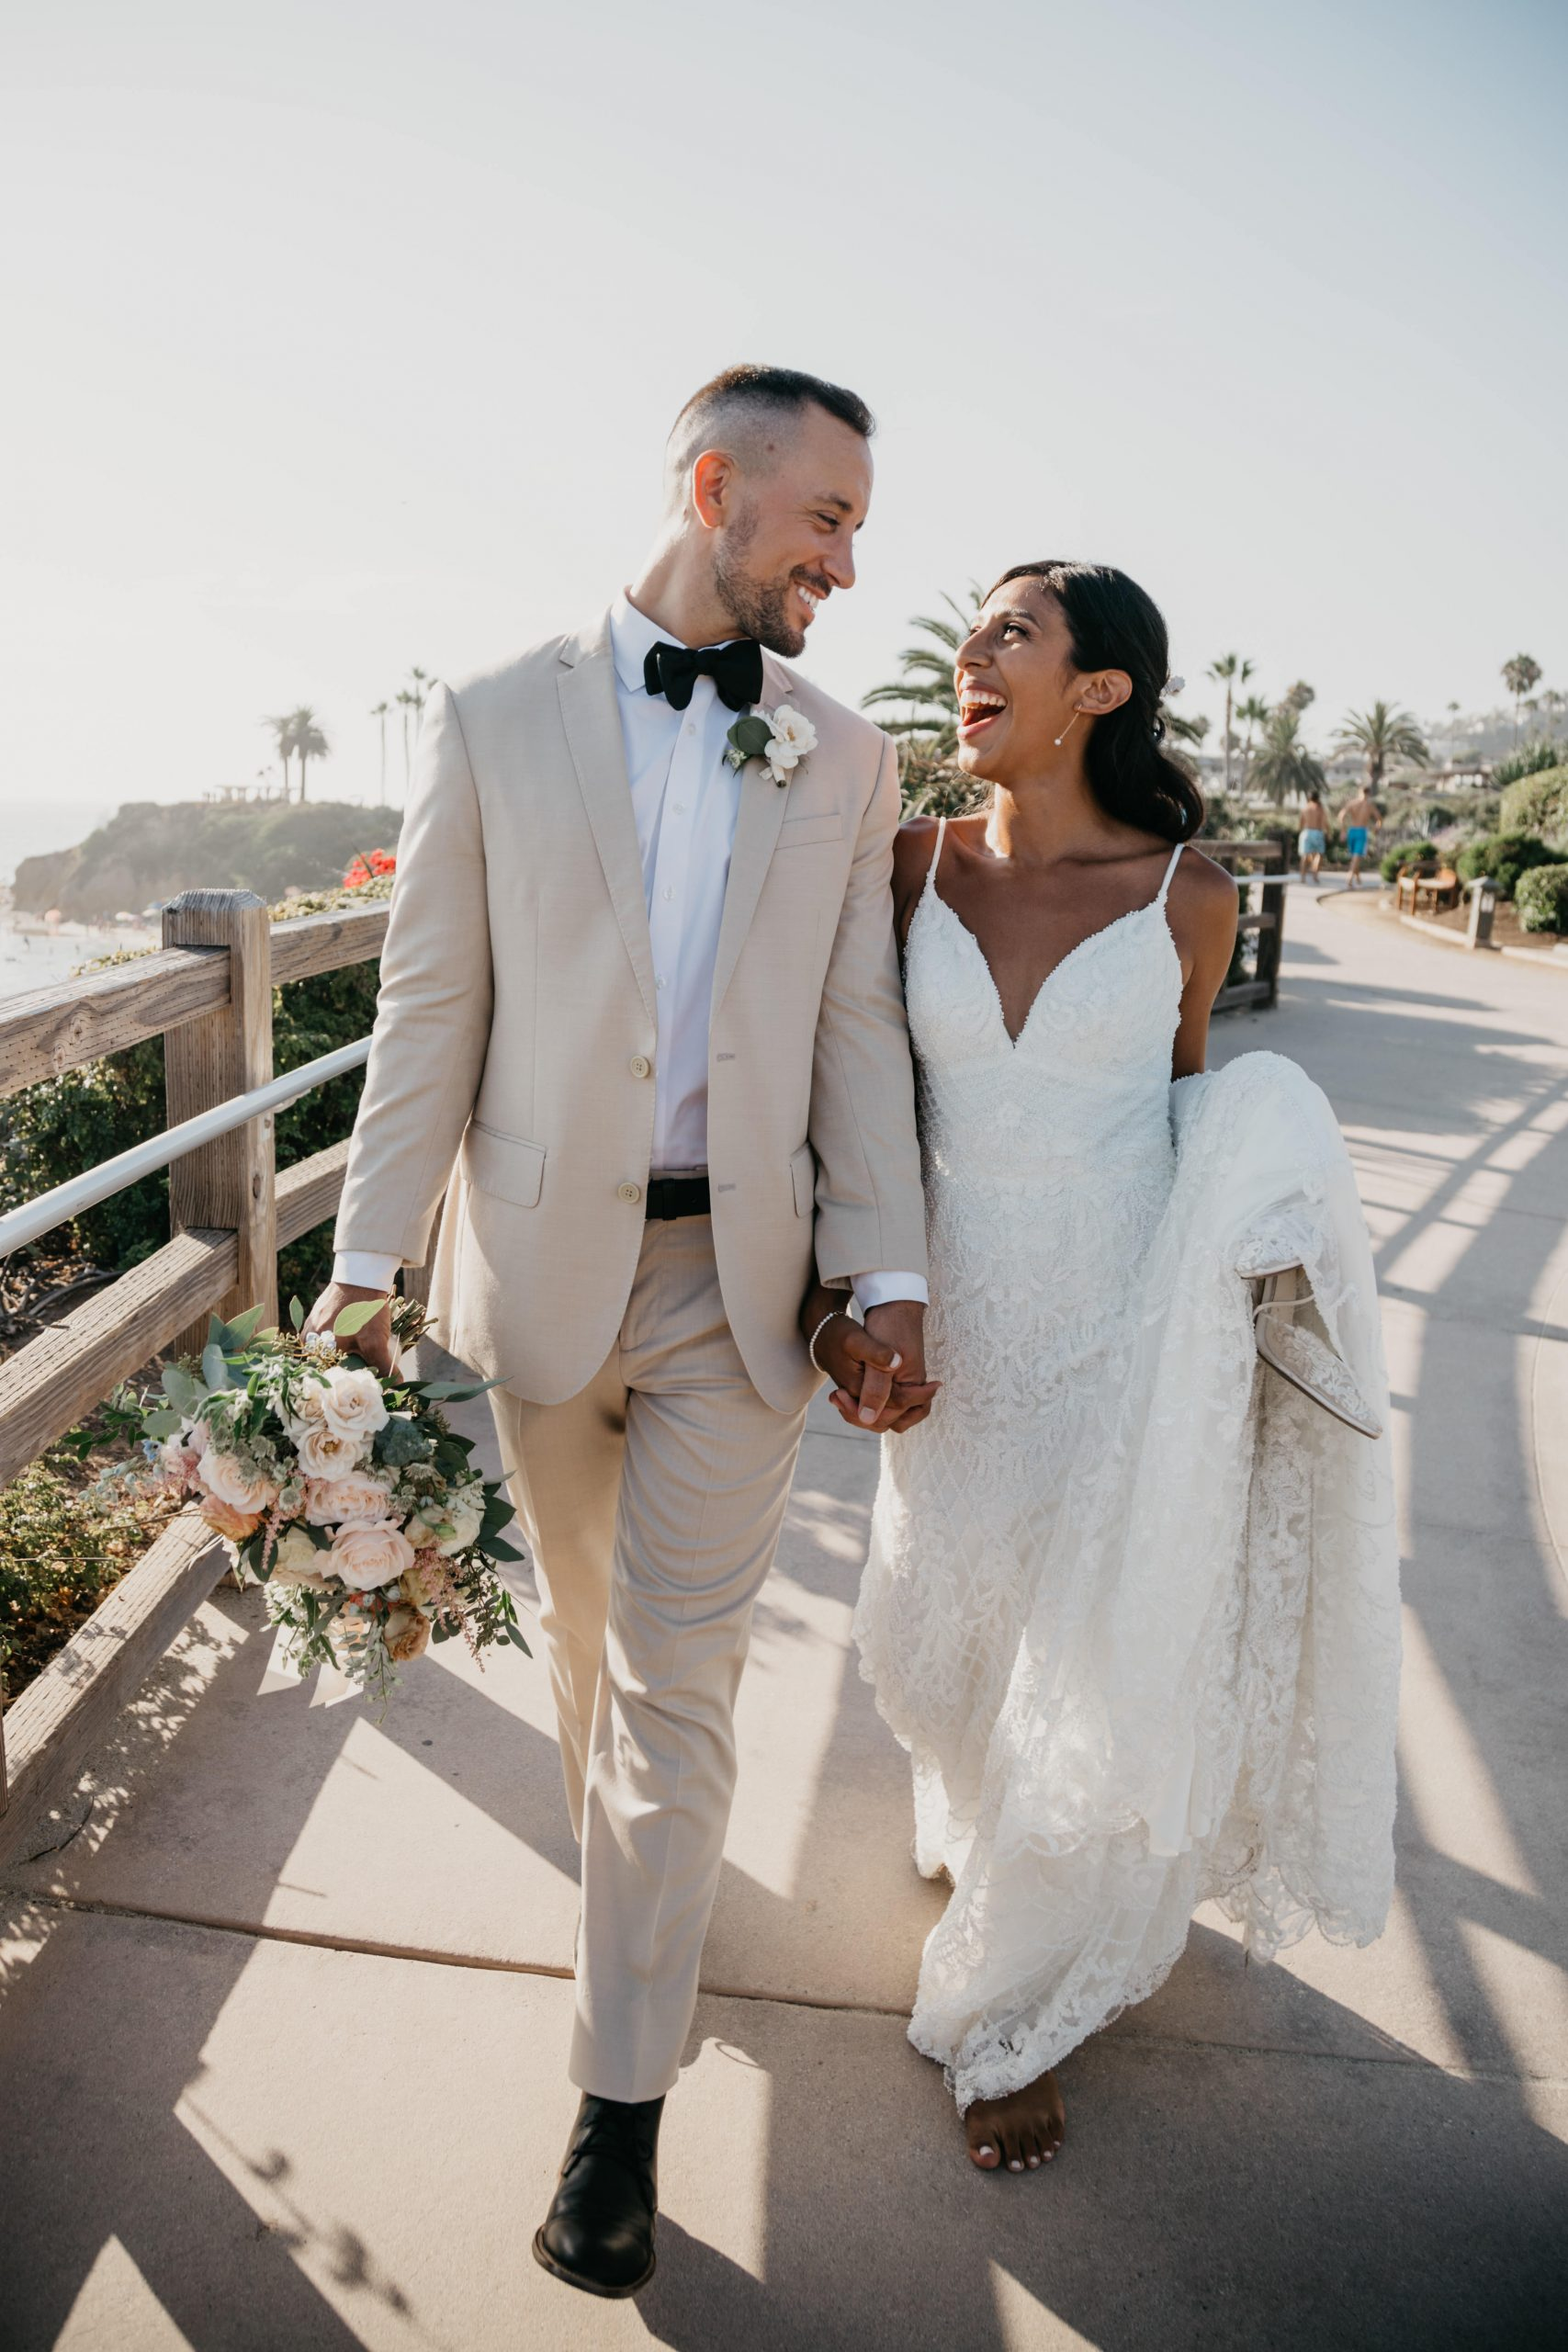 The Montage Laguna Beach Wedding Bridal Portraits, image by Fatima Elreda Photo